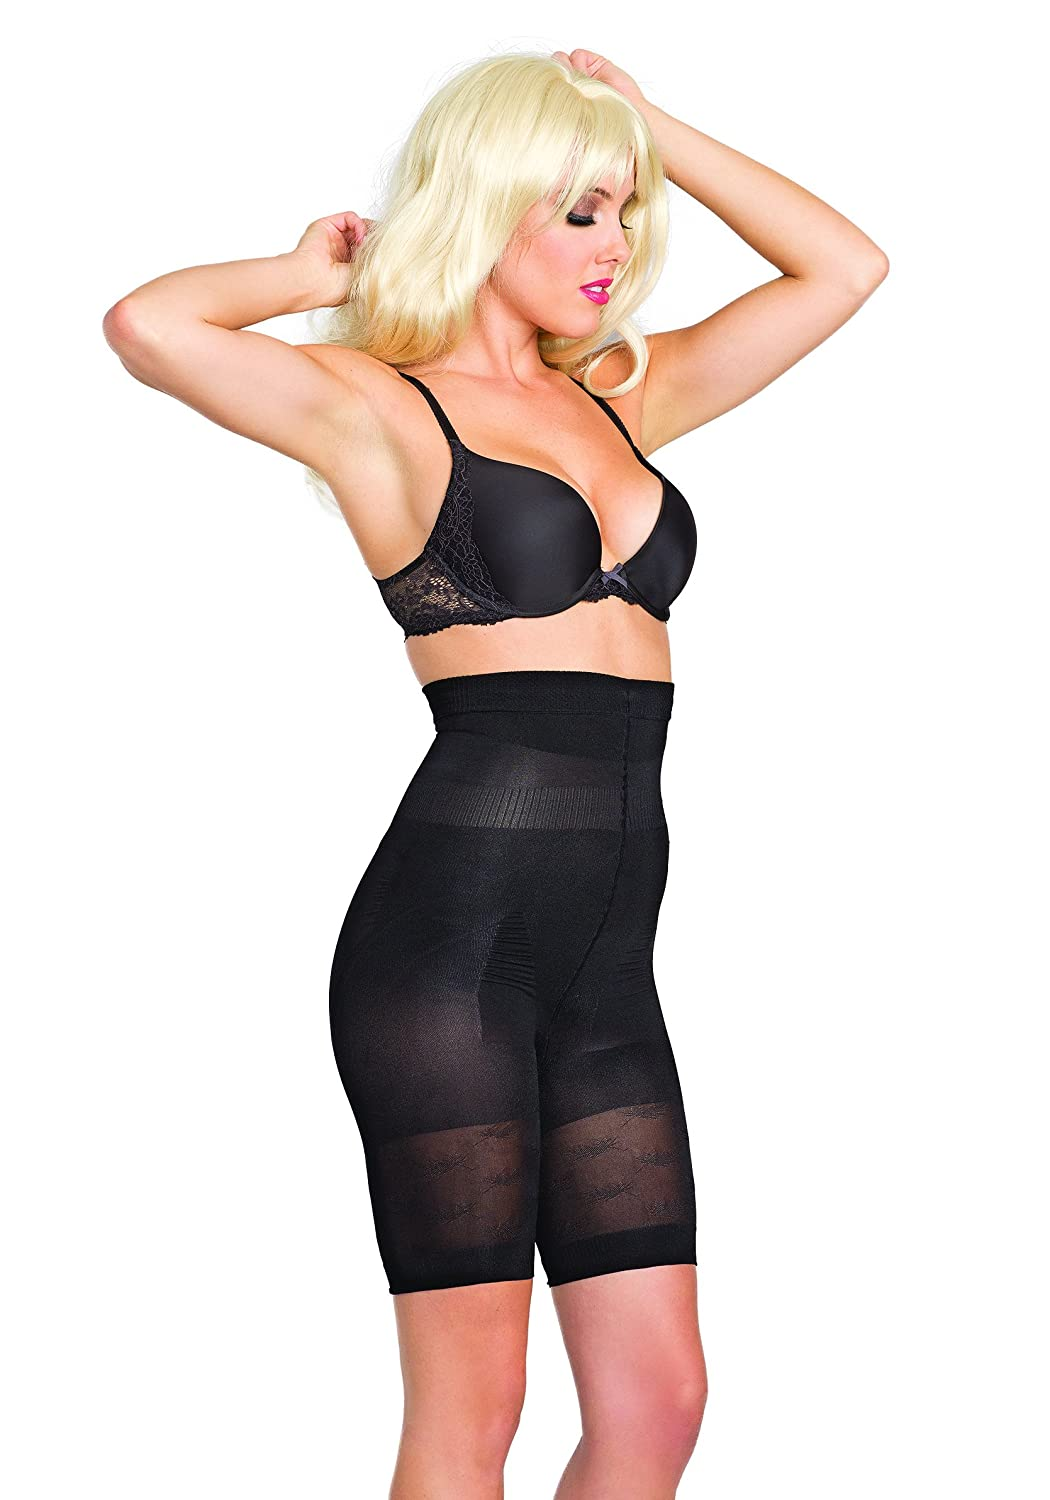 a9f0a2541c611 Amazon.com  Be Wicked Silicone Stay Up Strapless Mid-Thigh Body Shaper   Clothing